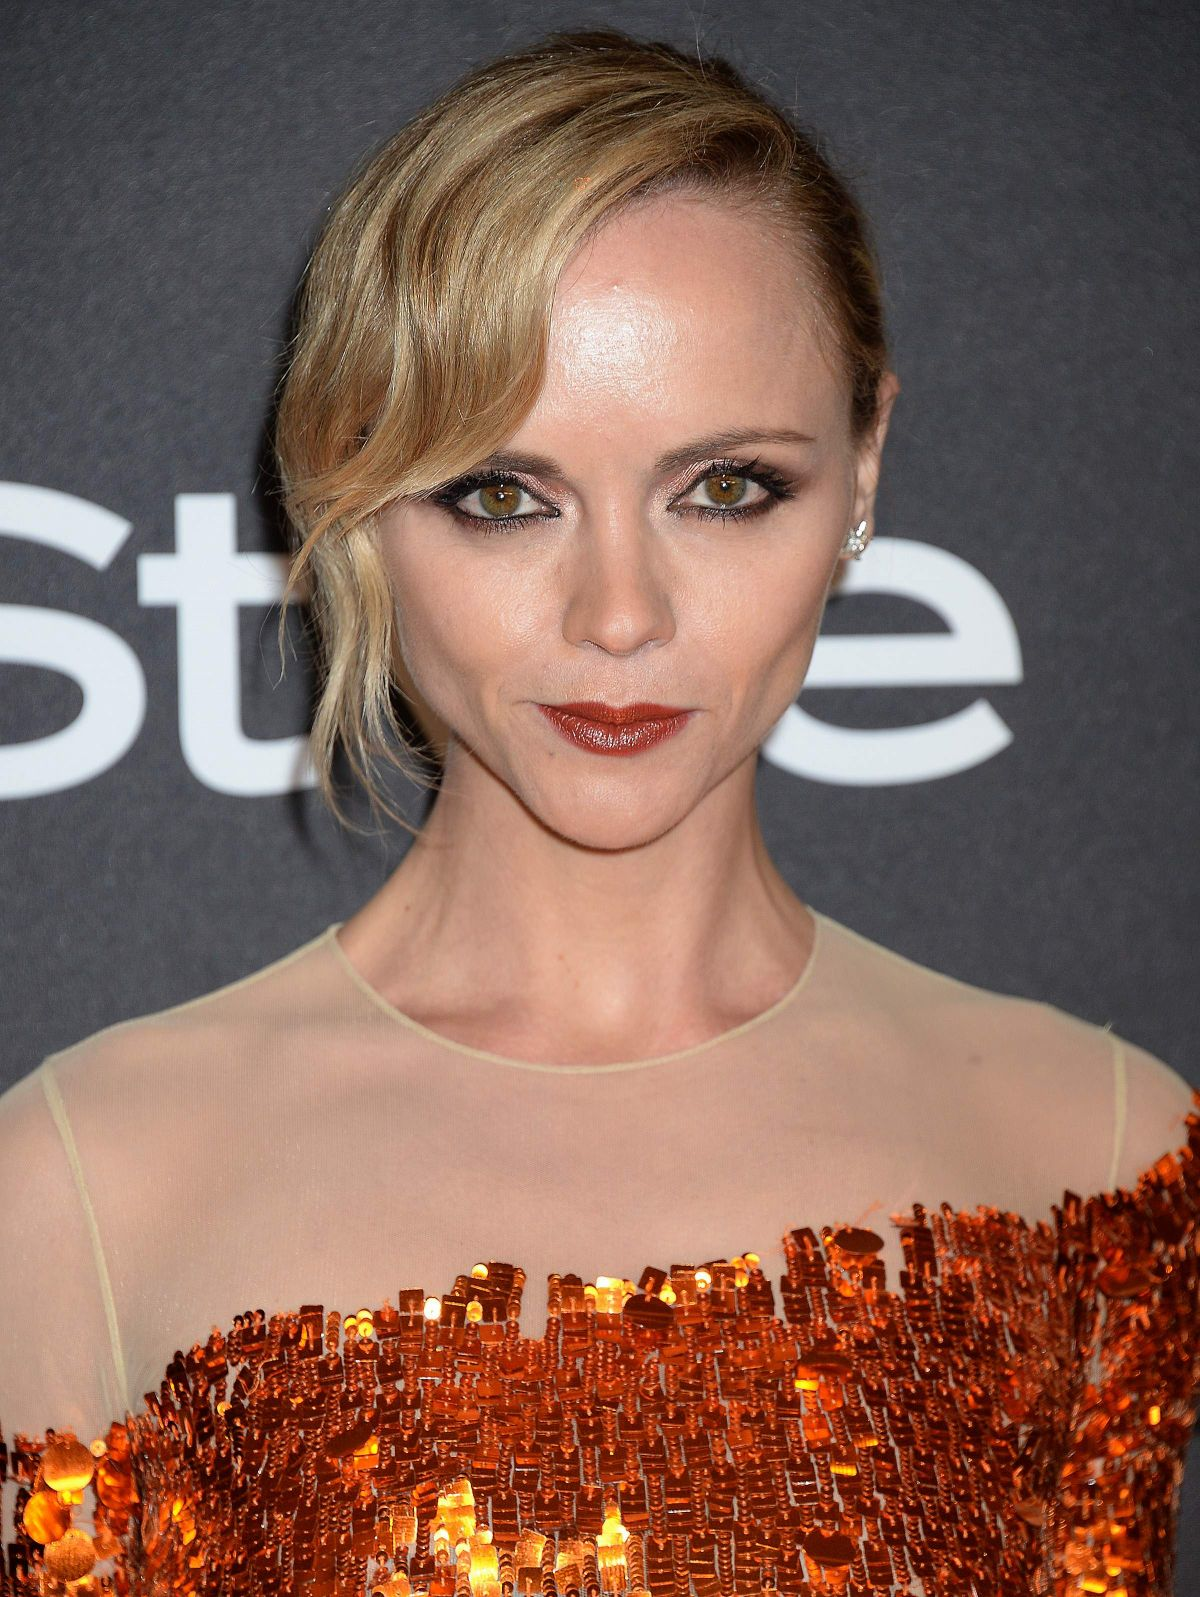 CHRISTINA RICCI at Warner Bros. Pictures & Instyle's 18th Annual ... Christina Ricci